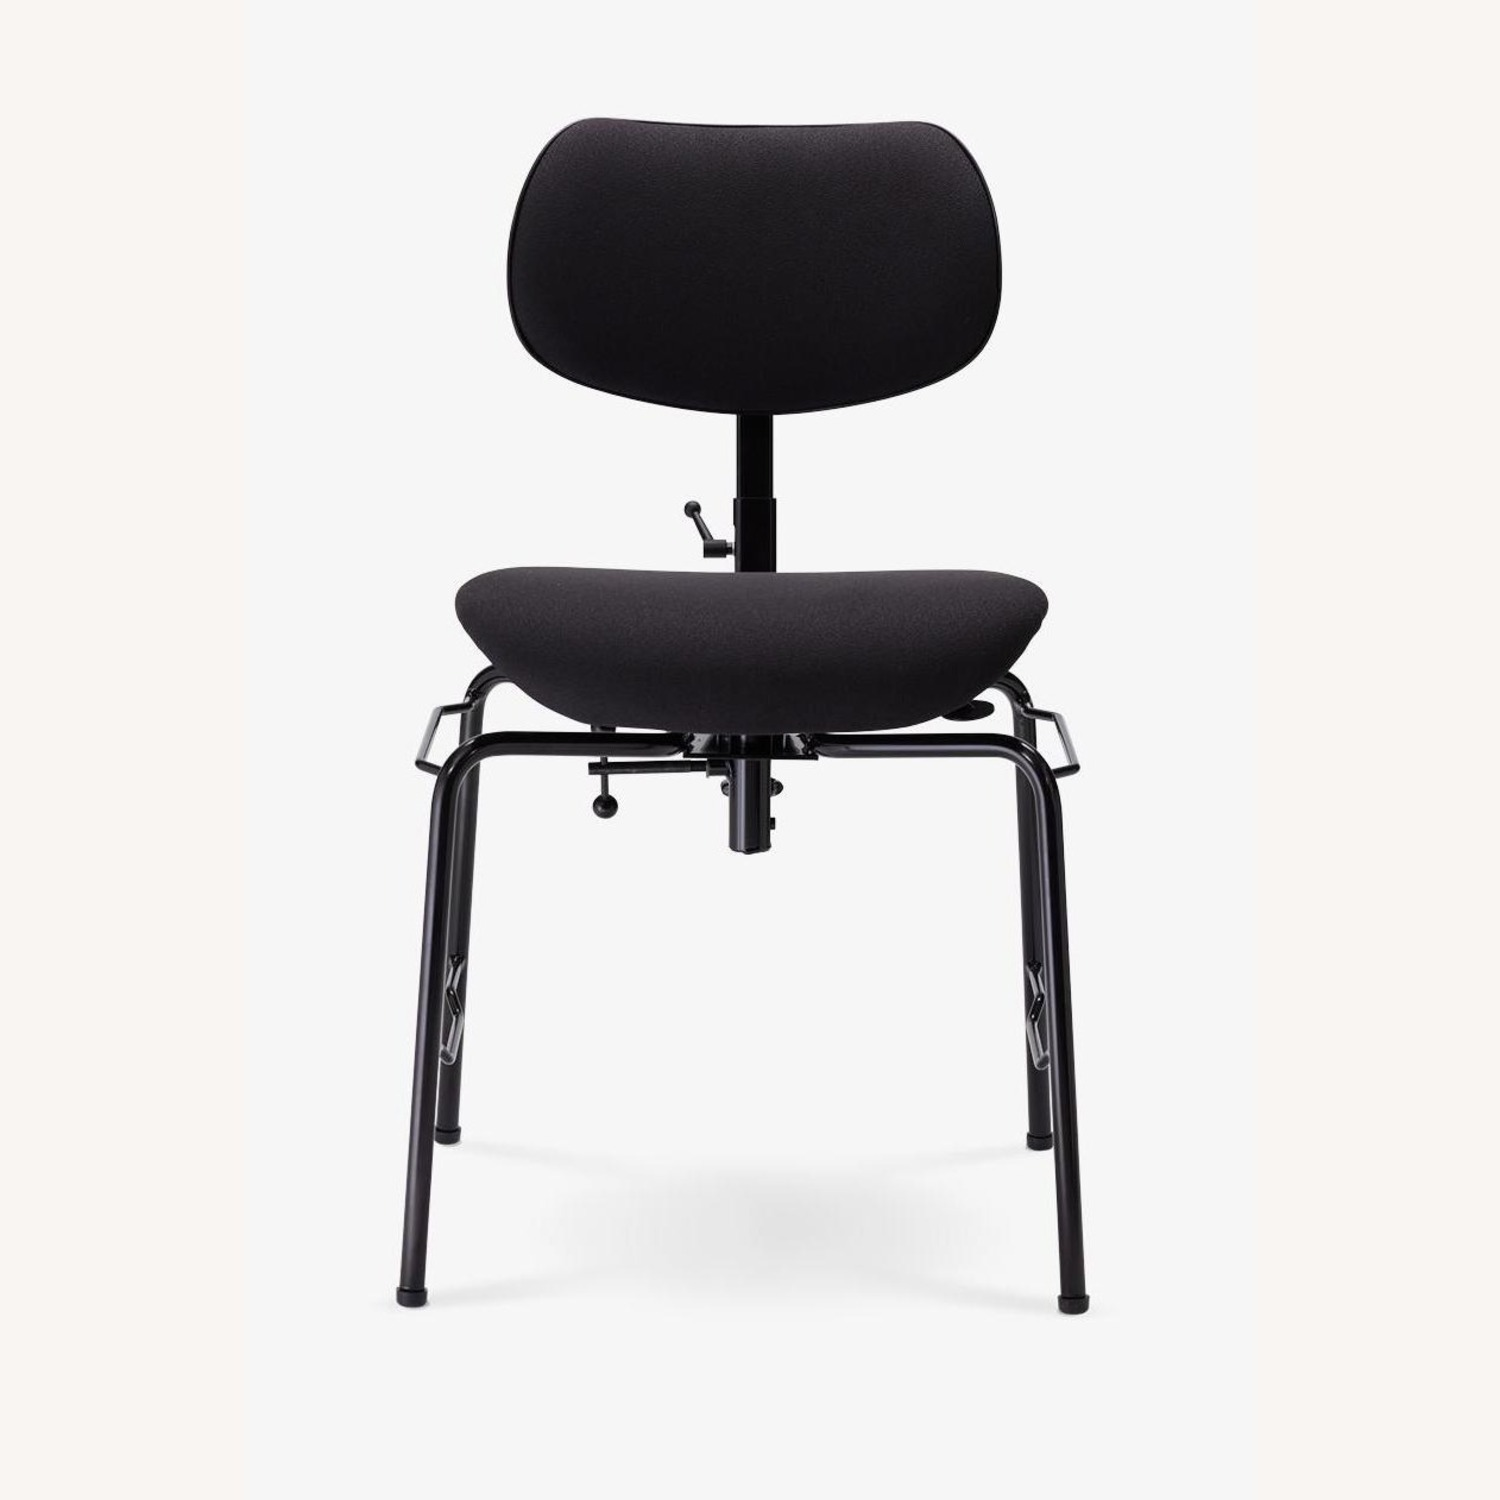 "Wilde + Spieth ""Orchestra"" Chair Black - image-8"